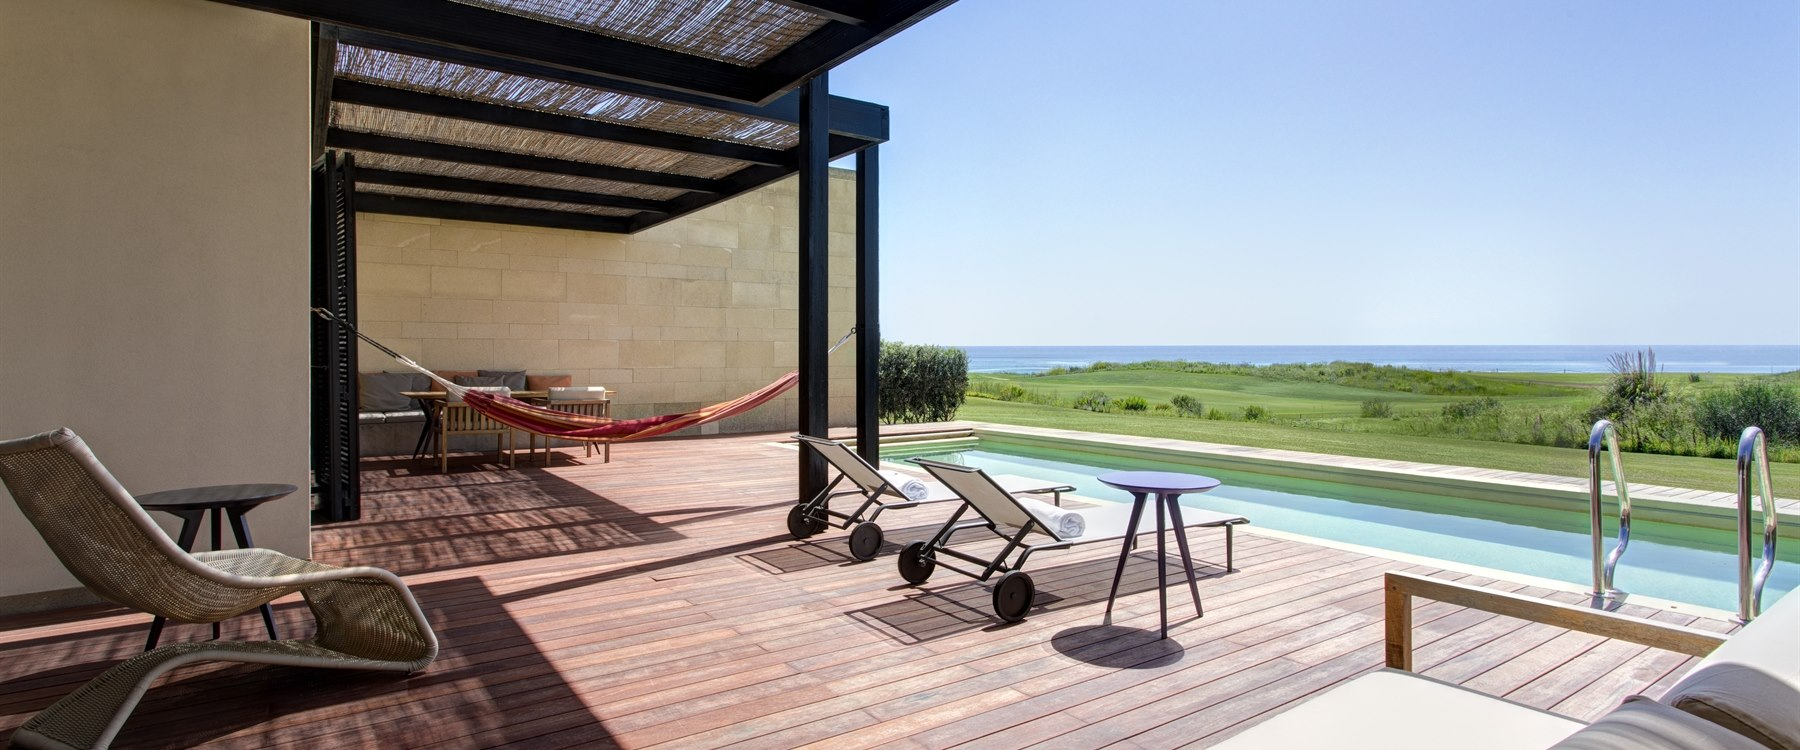 Villa peonia at Verdura Resort, Sicily